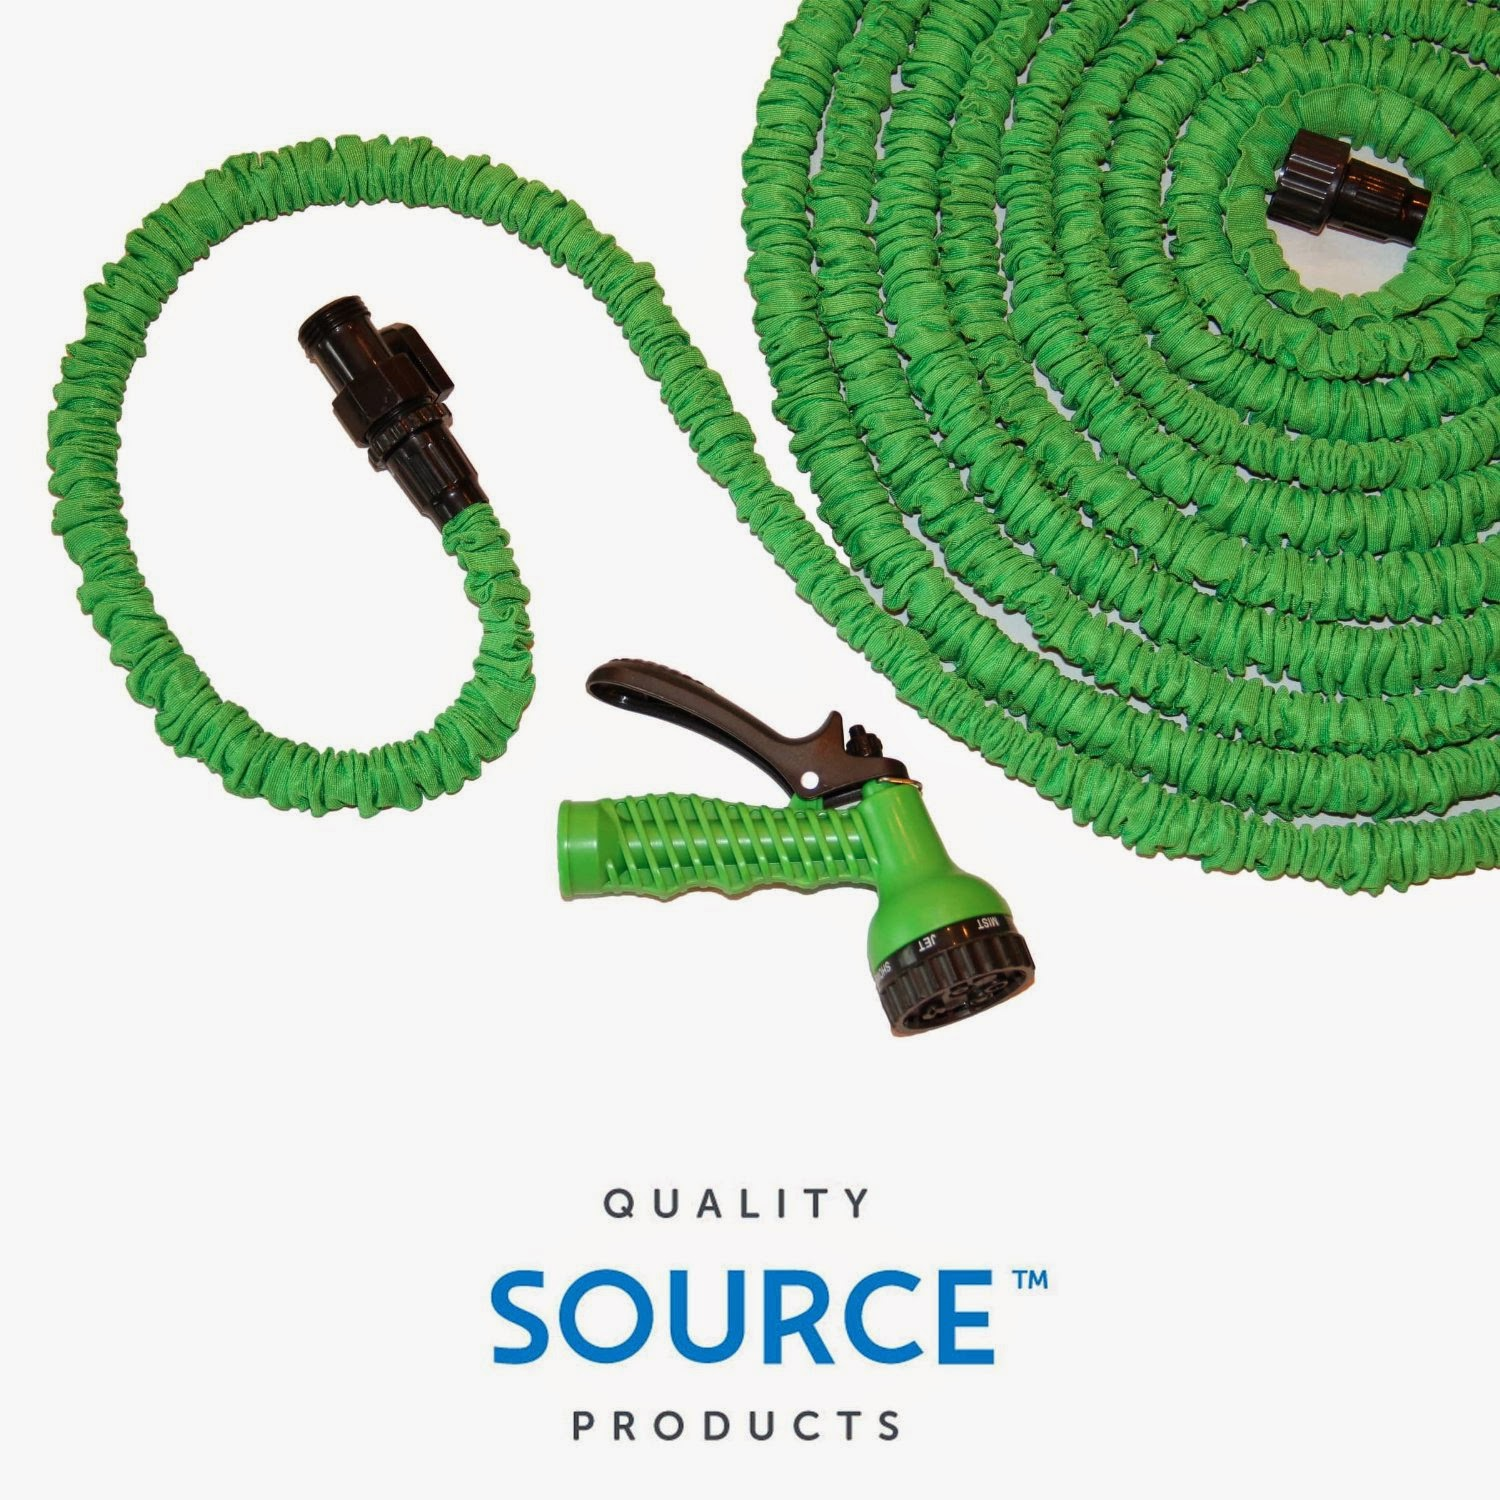 Quality Source Products - Expandable Hose